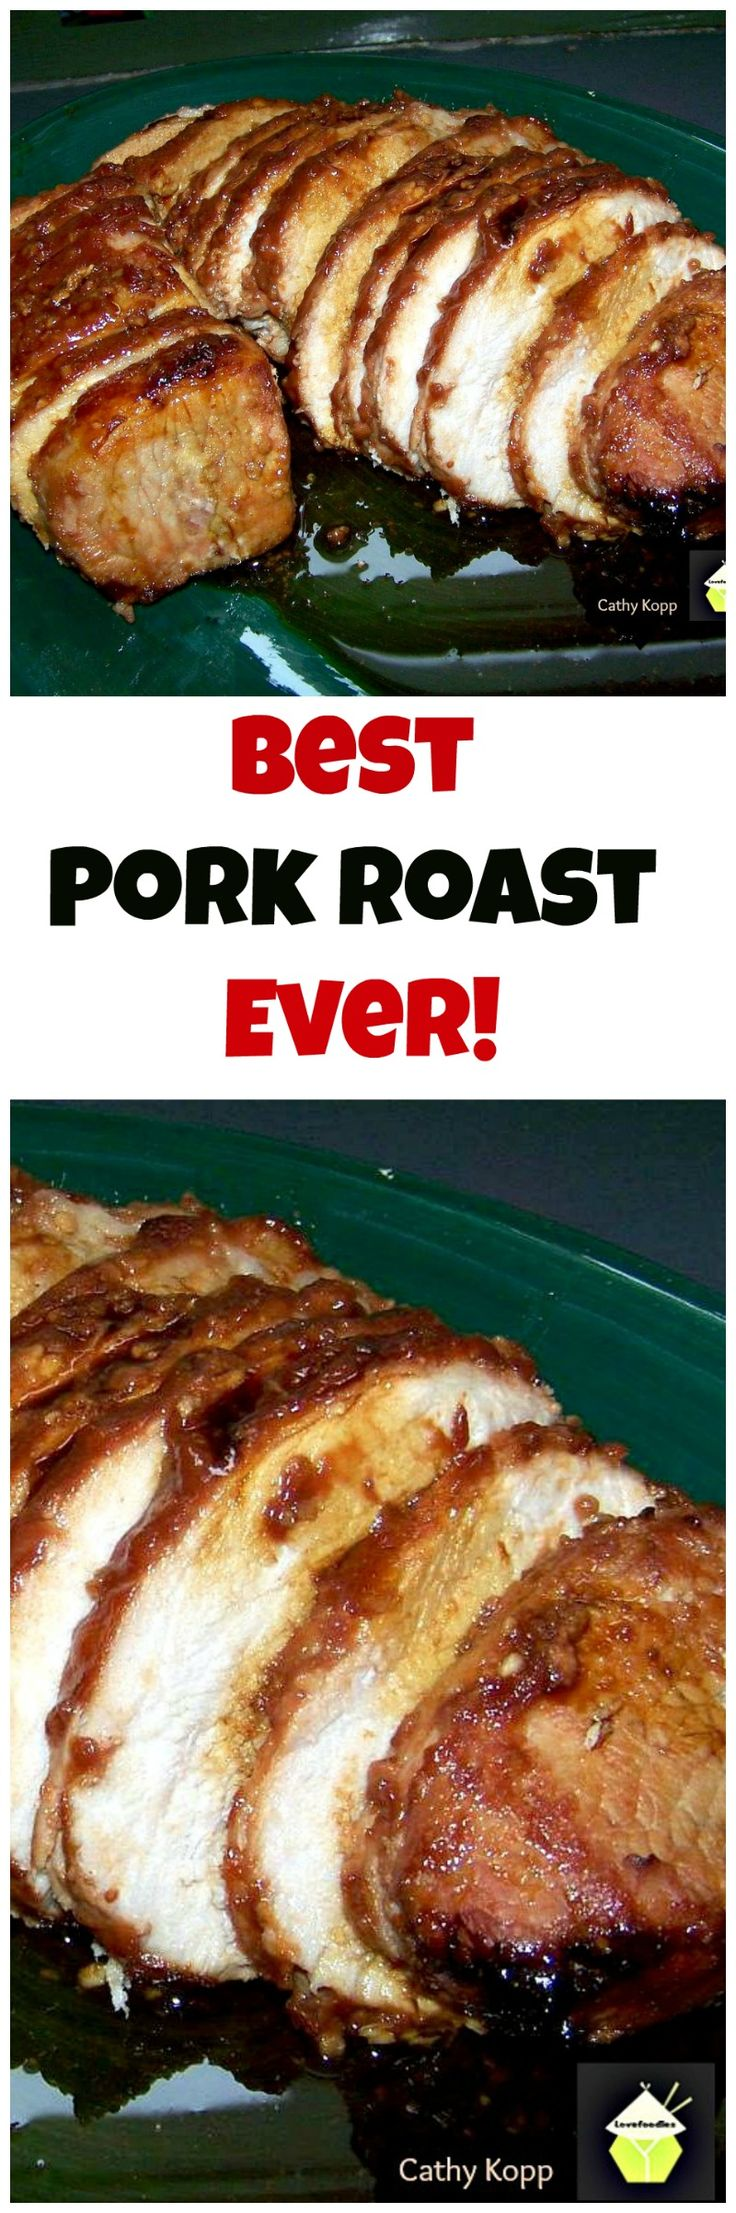 Best Pork Roast Ever! A lovely marinade which will give great flavor and keep your pork juicy. Great for the oven of grill. | Lovefoodies.com